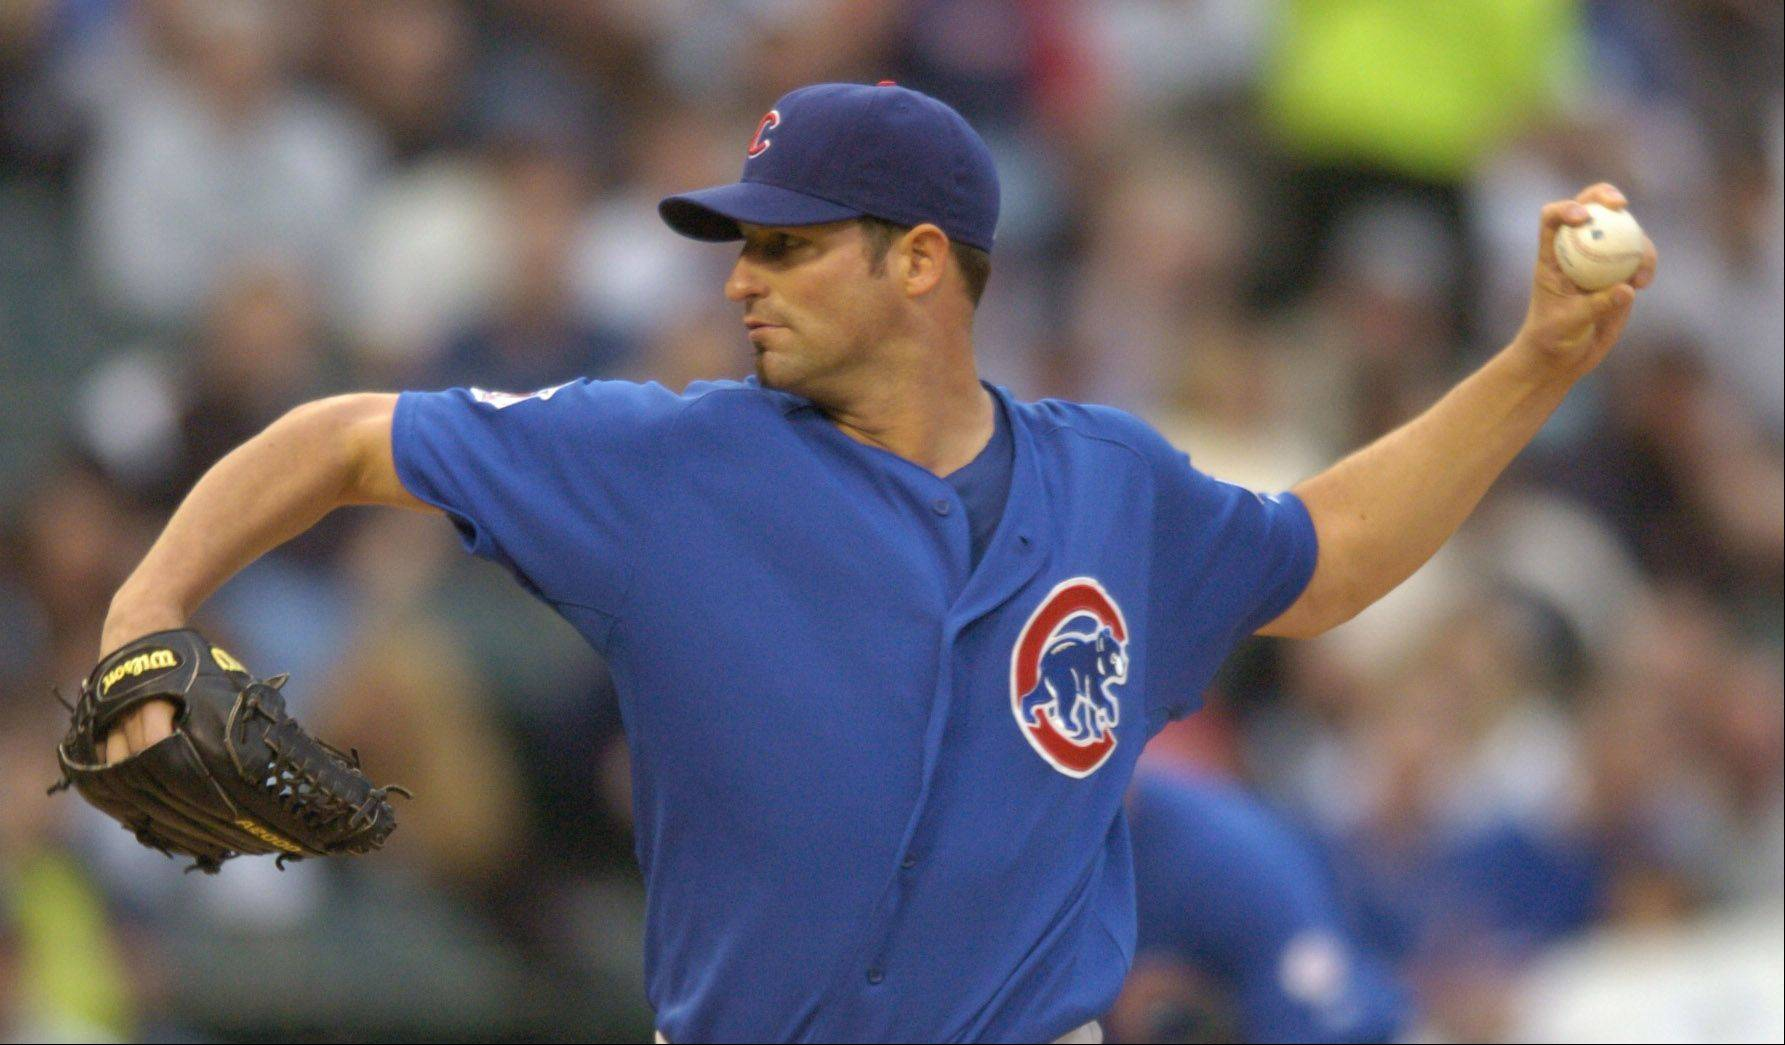 Cubs pitcher Doug Davis delivers against the White Sox during Wednesday's game at U.S. Cellular Field.